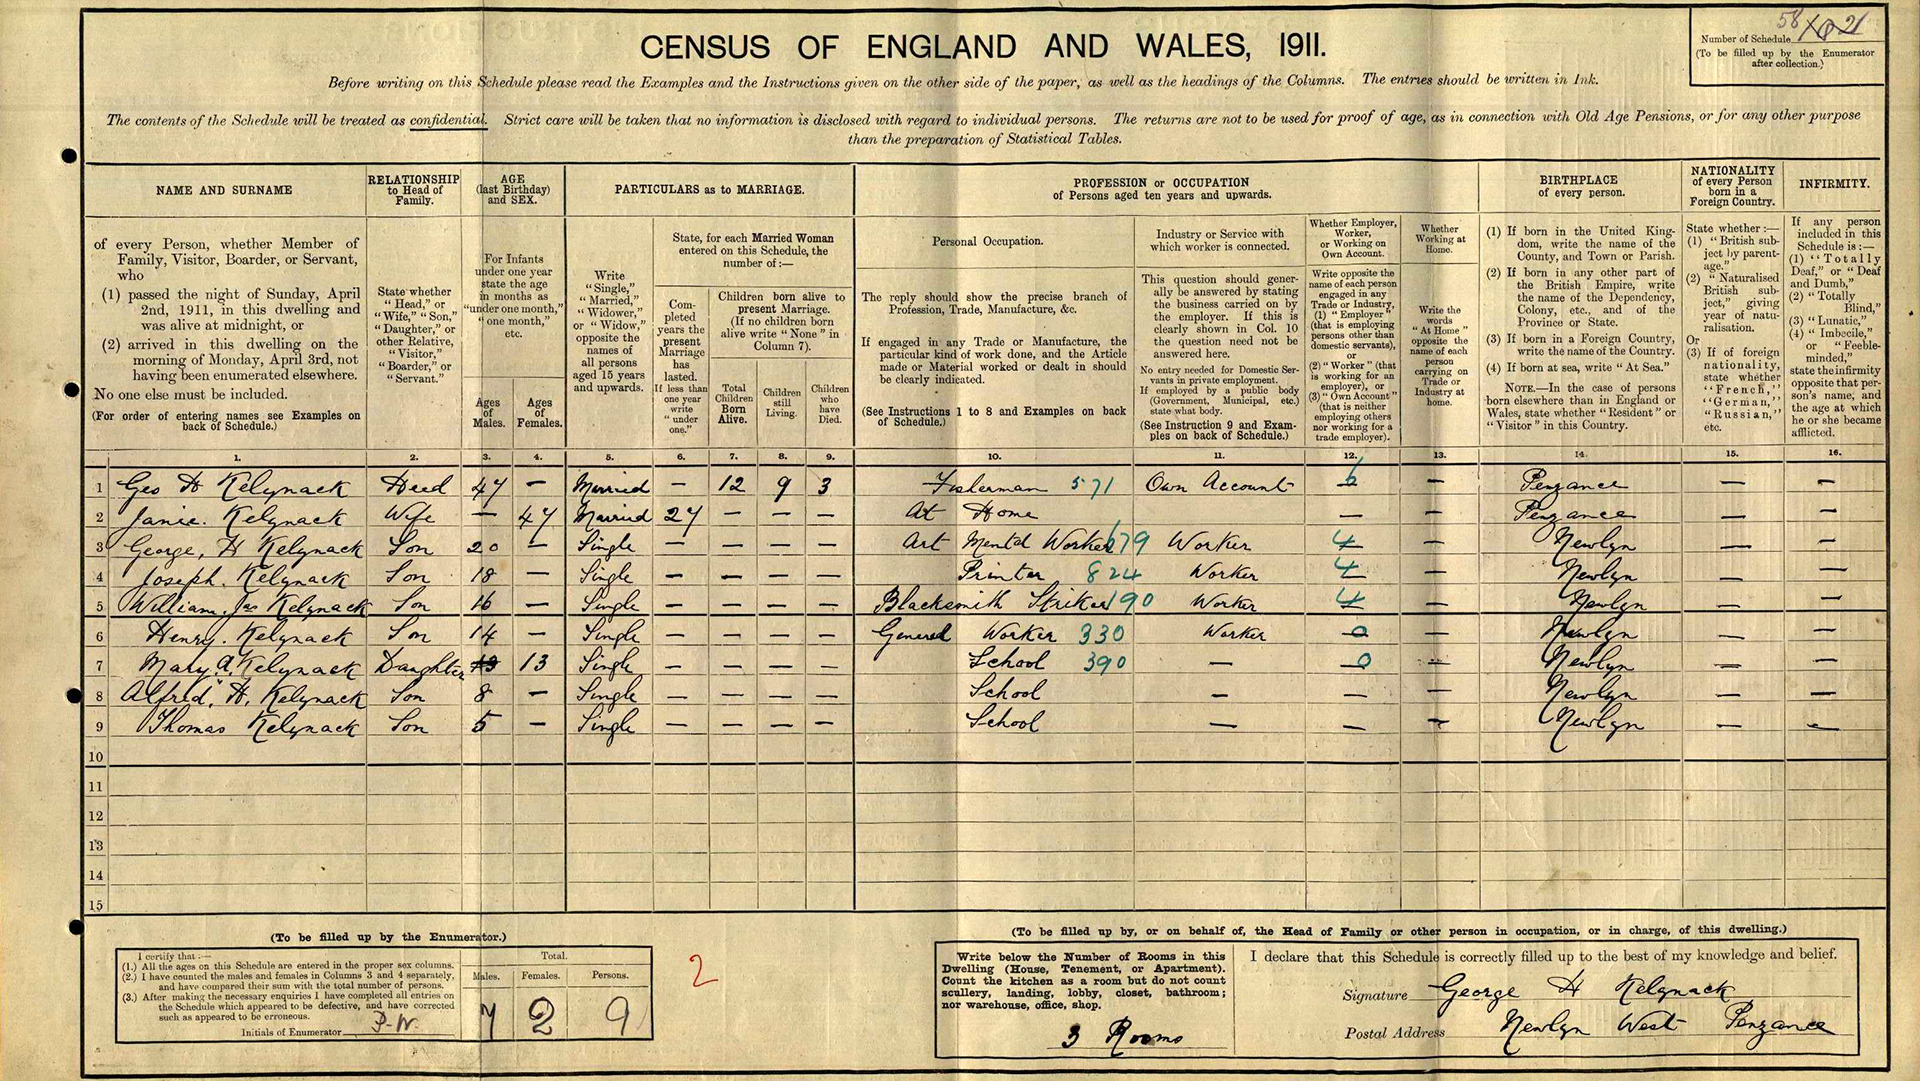 Scan of printed census entry form with handwritten entries.